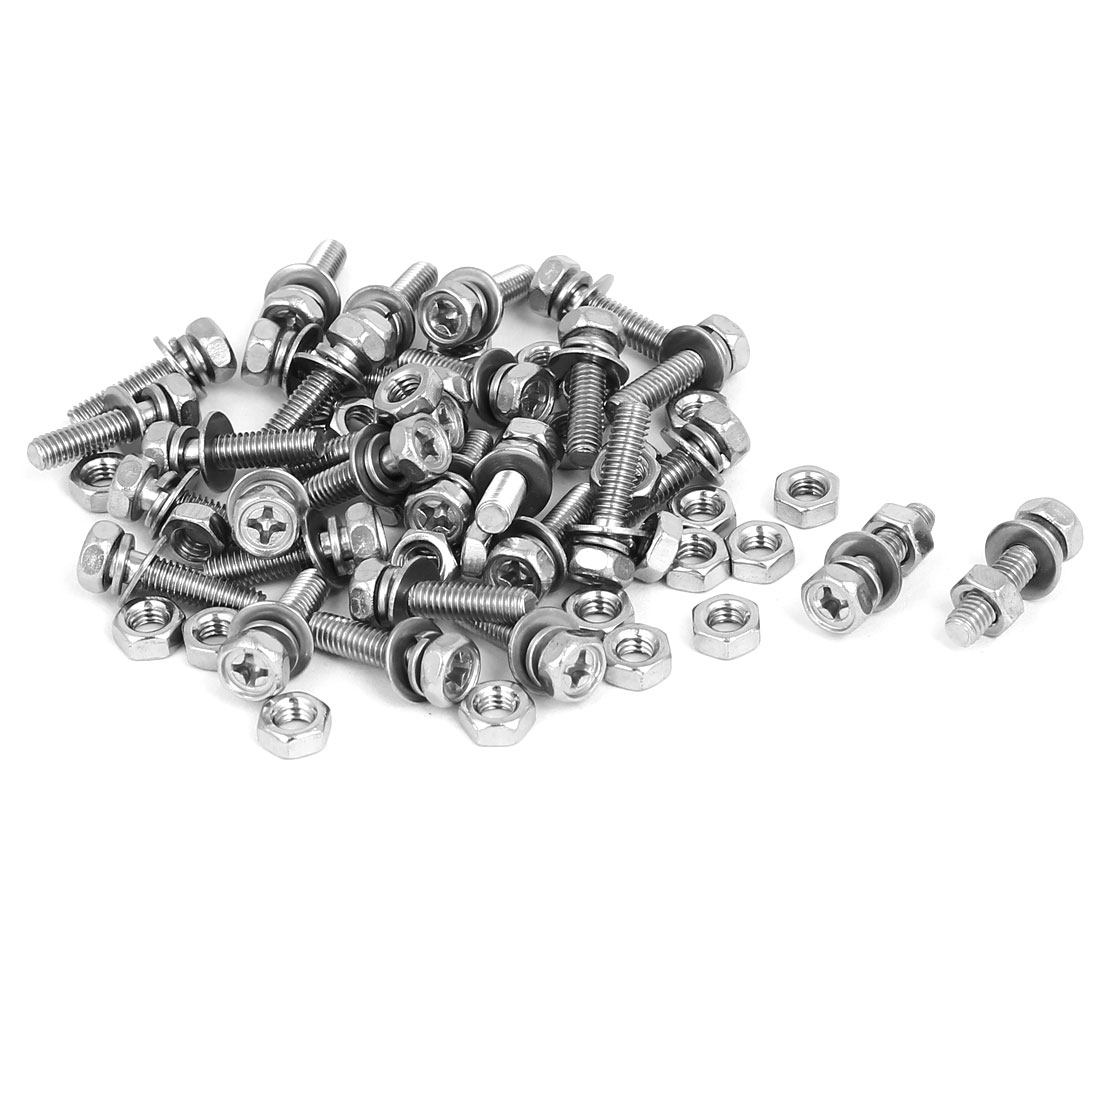 M4 x 16mm 304 Stainless Steel Phillips Hex Head Bolts Nuts w Washers 30 Sets